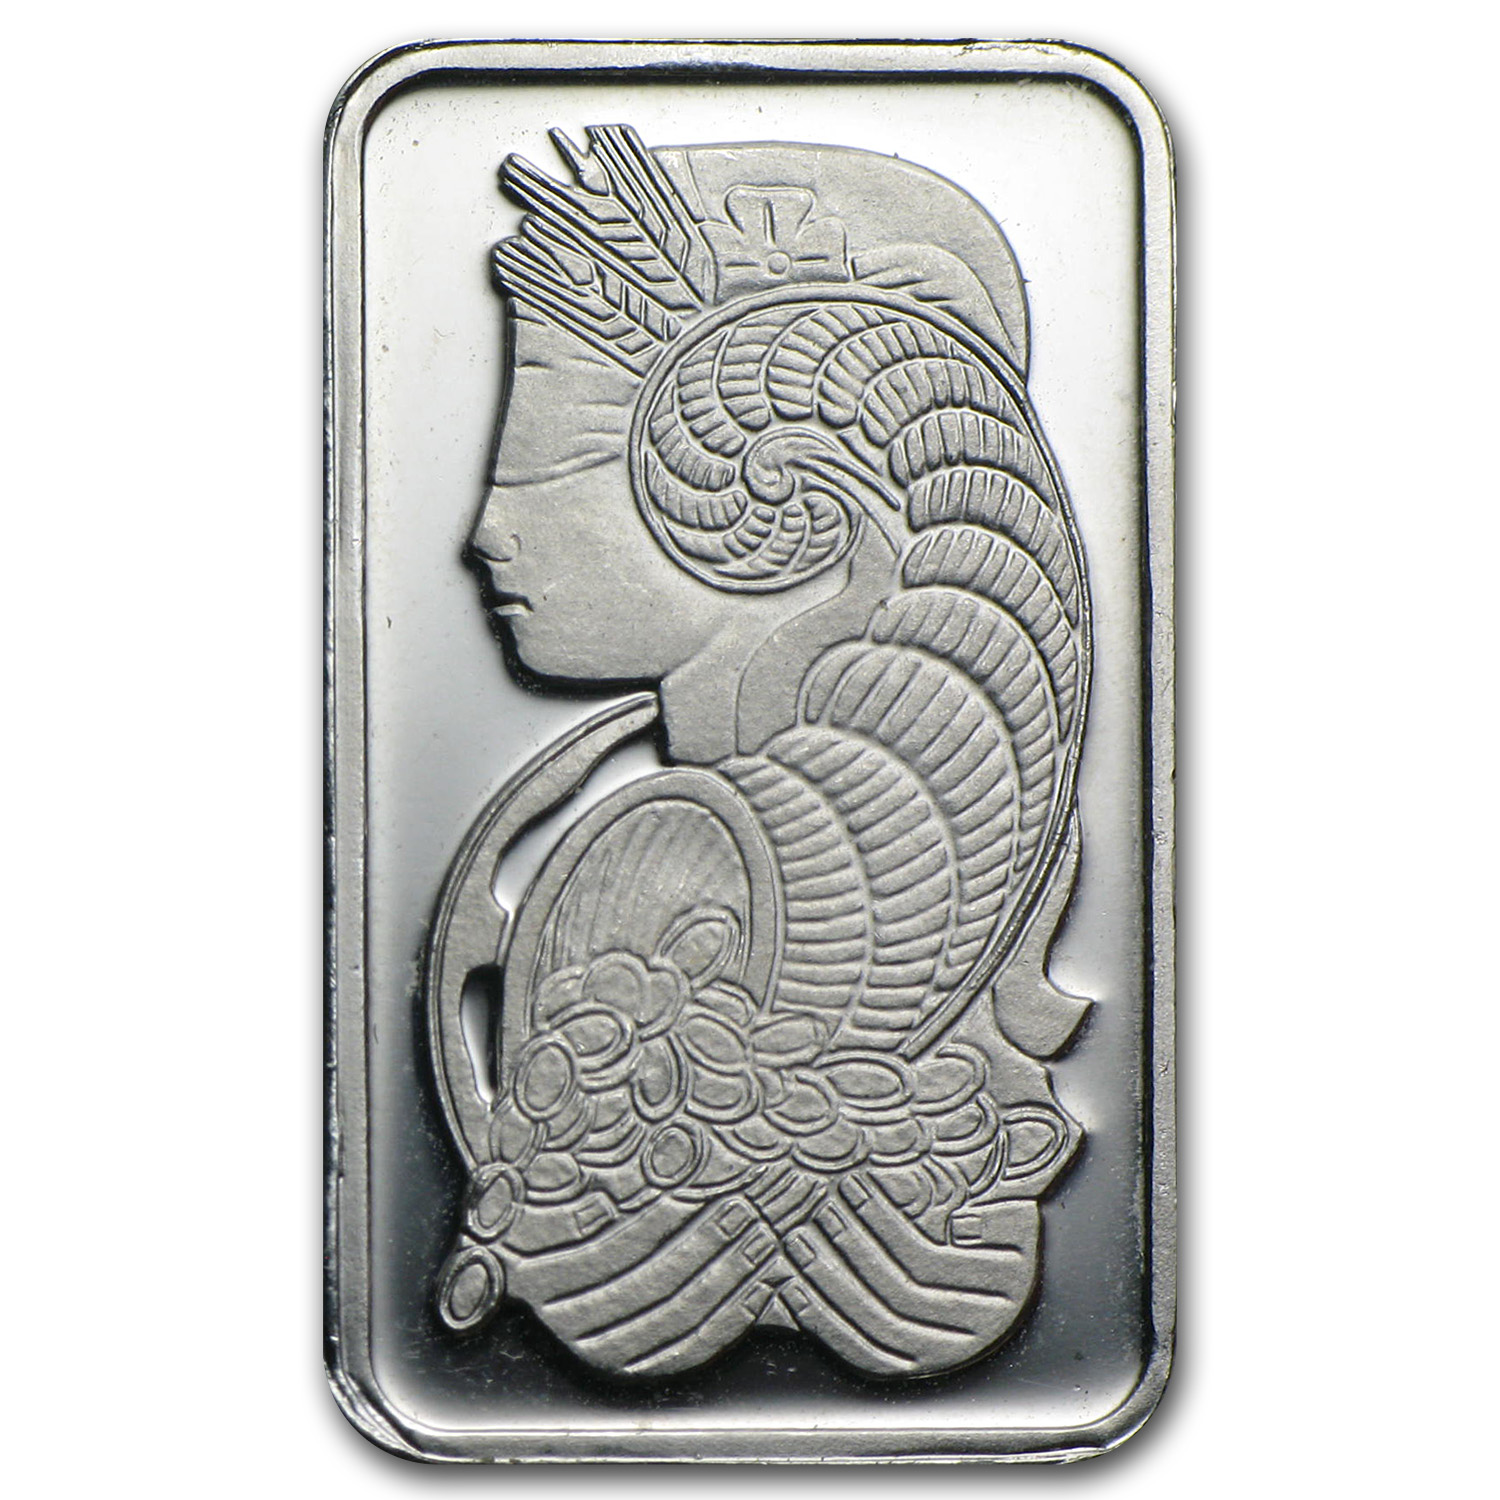 5 gram Platinum Bar - Secondary Market